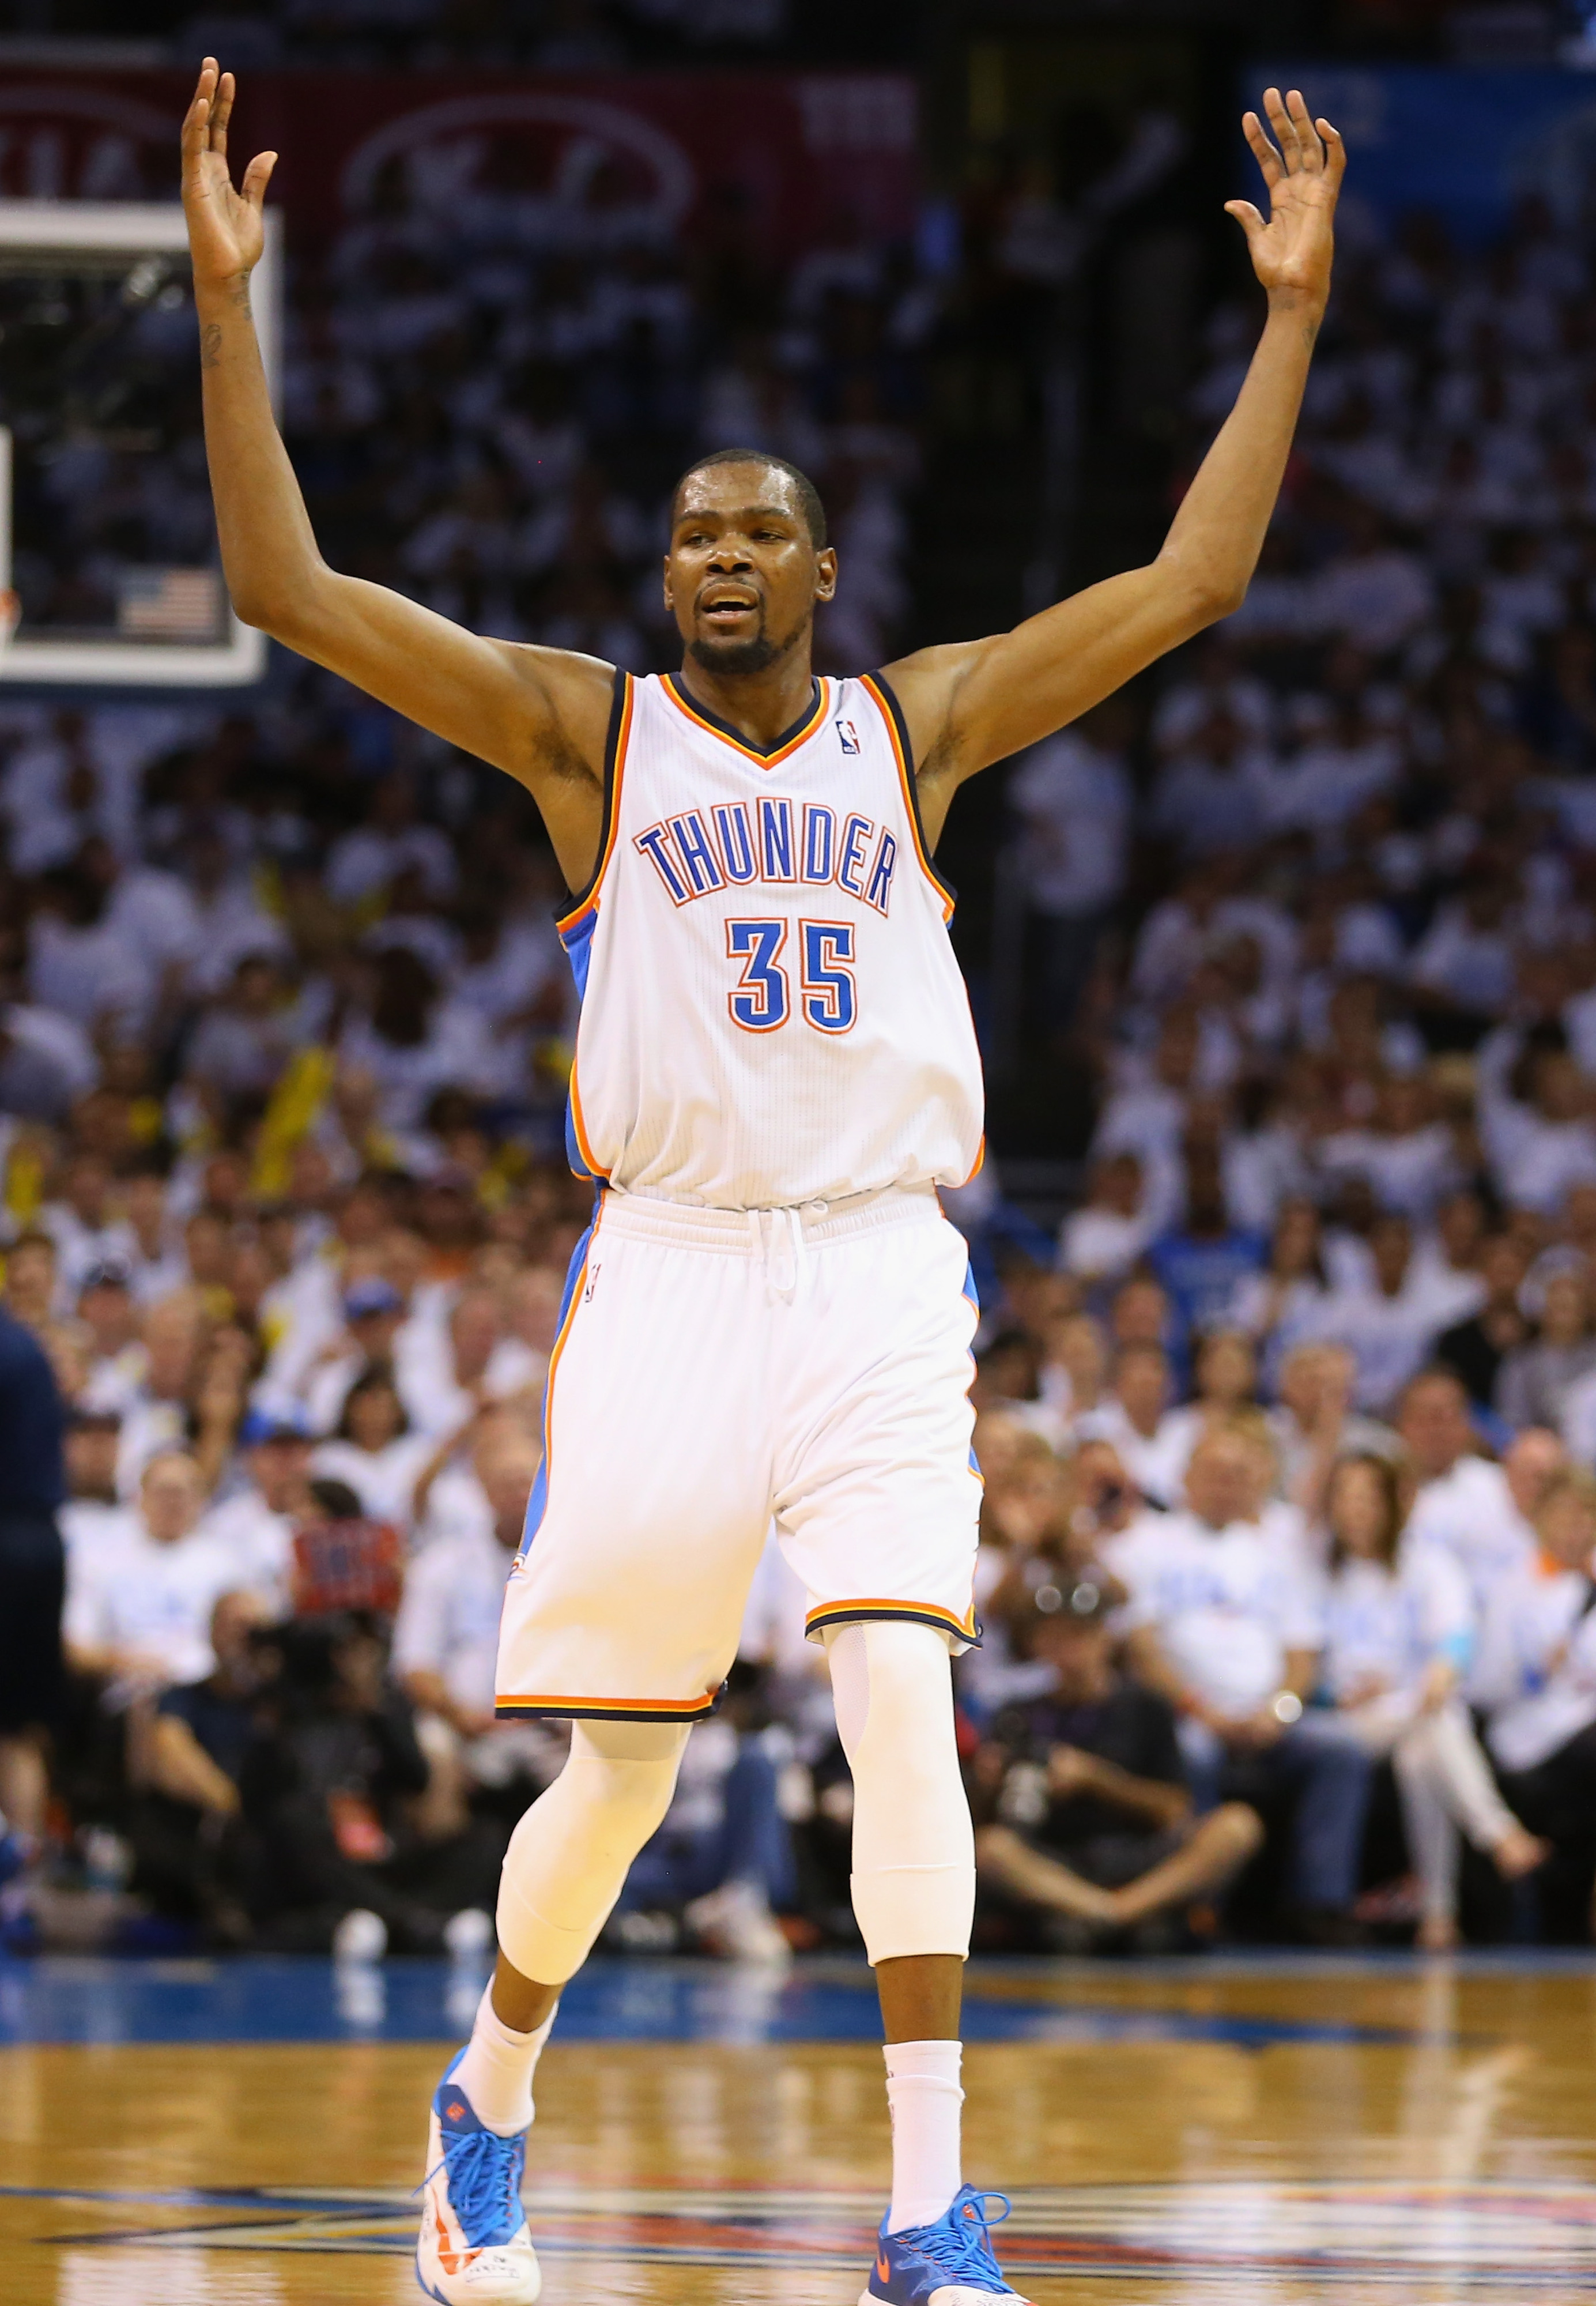 KD is ready to defend his crown as best Fantasy Basketball player in the world.